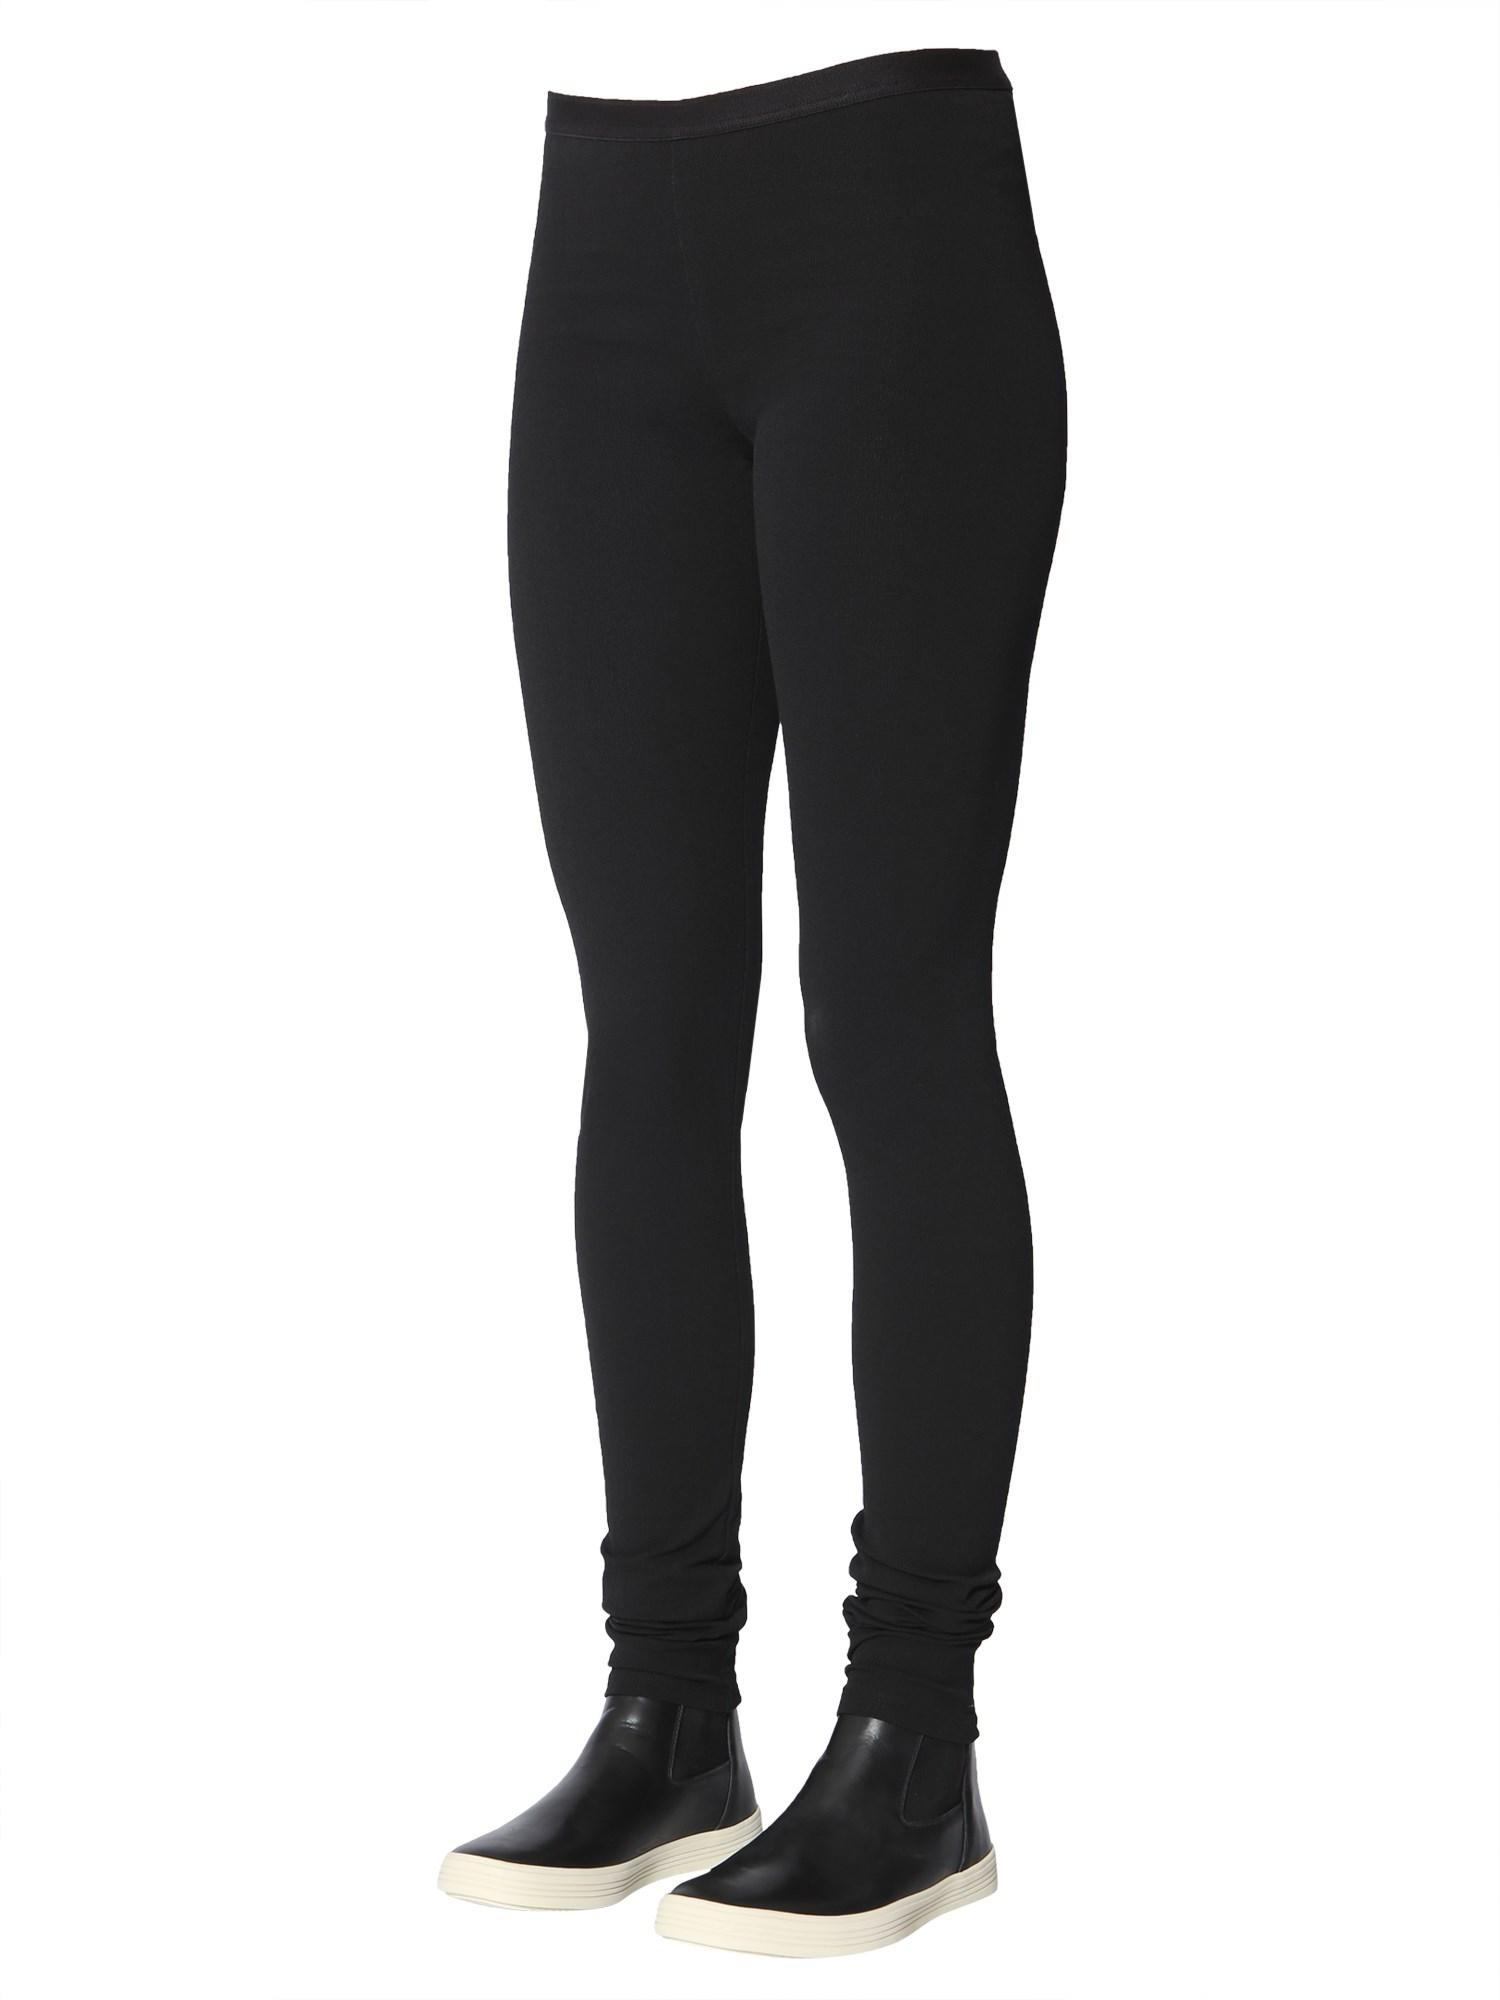 90bbd5ad7b083f Rick Owens Cotton Mixed Crêpe LEGGINGS in Black - Save 3% - Lyst